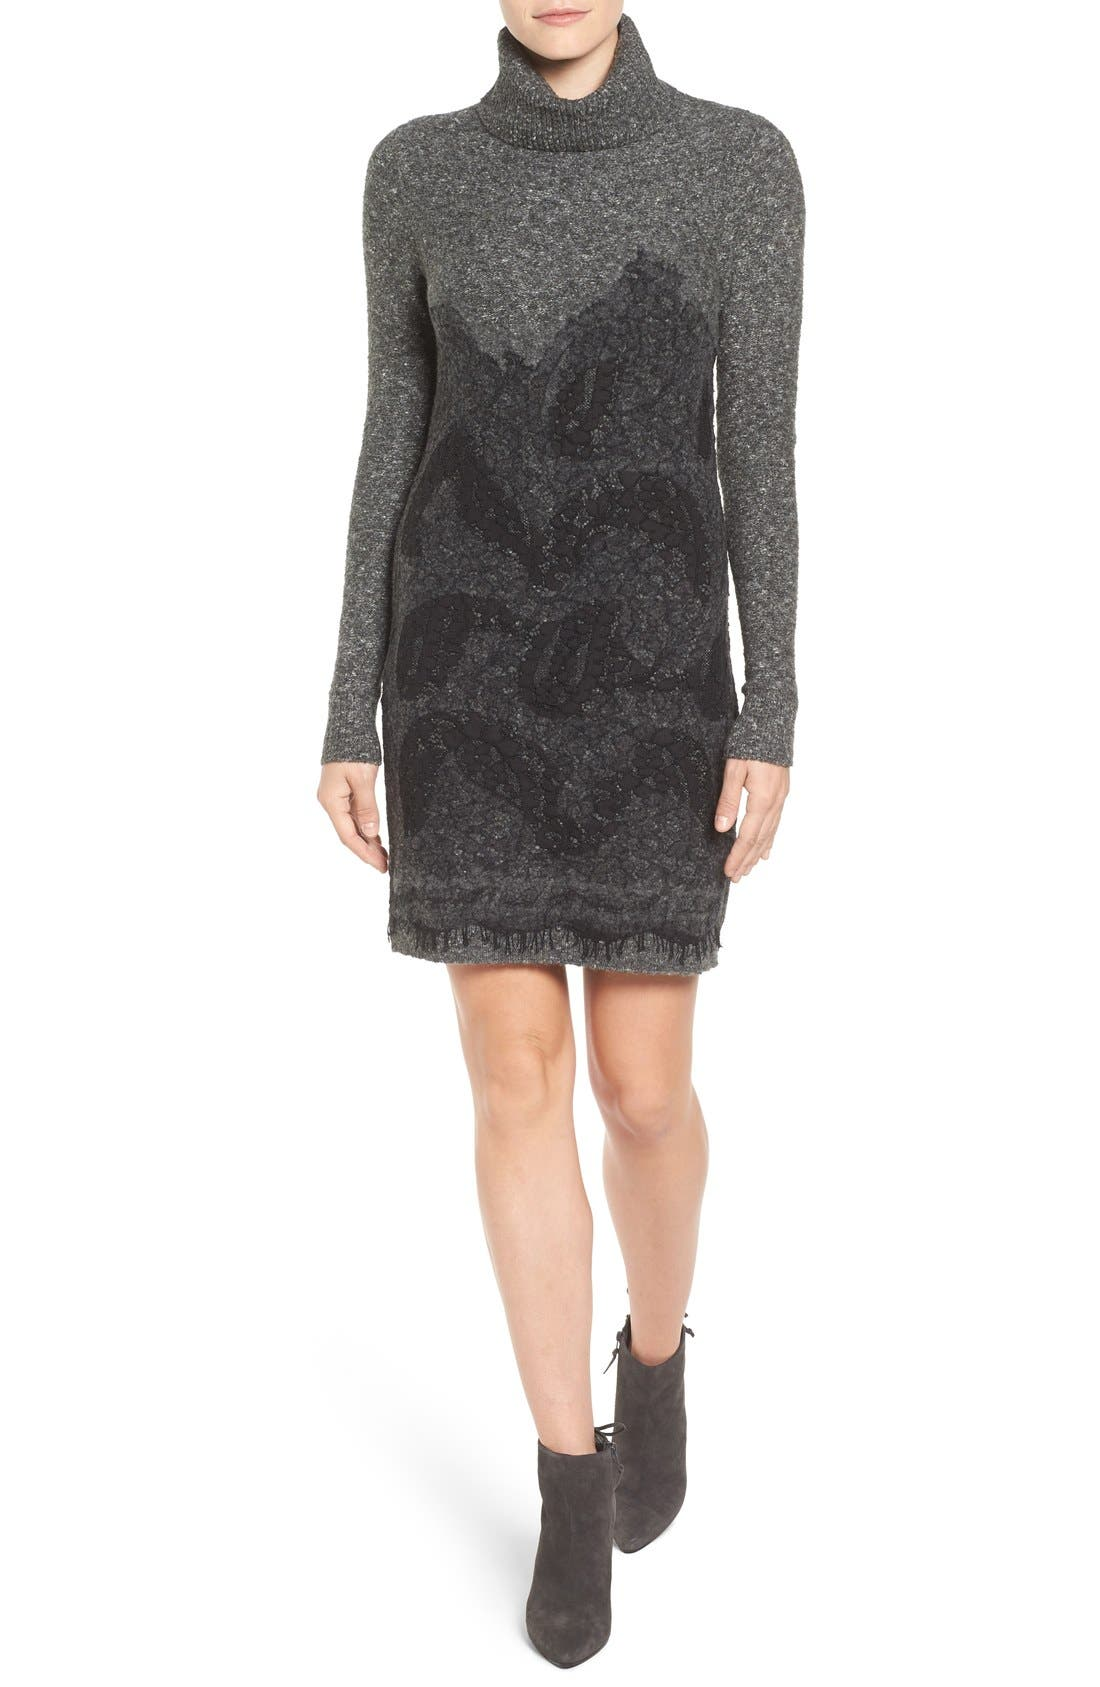 Alternate Image 1 Selected - MICHAEL Michael Kors Needle Punched Lace Sweater Dress